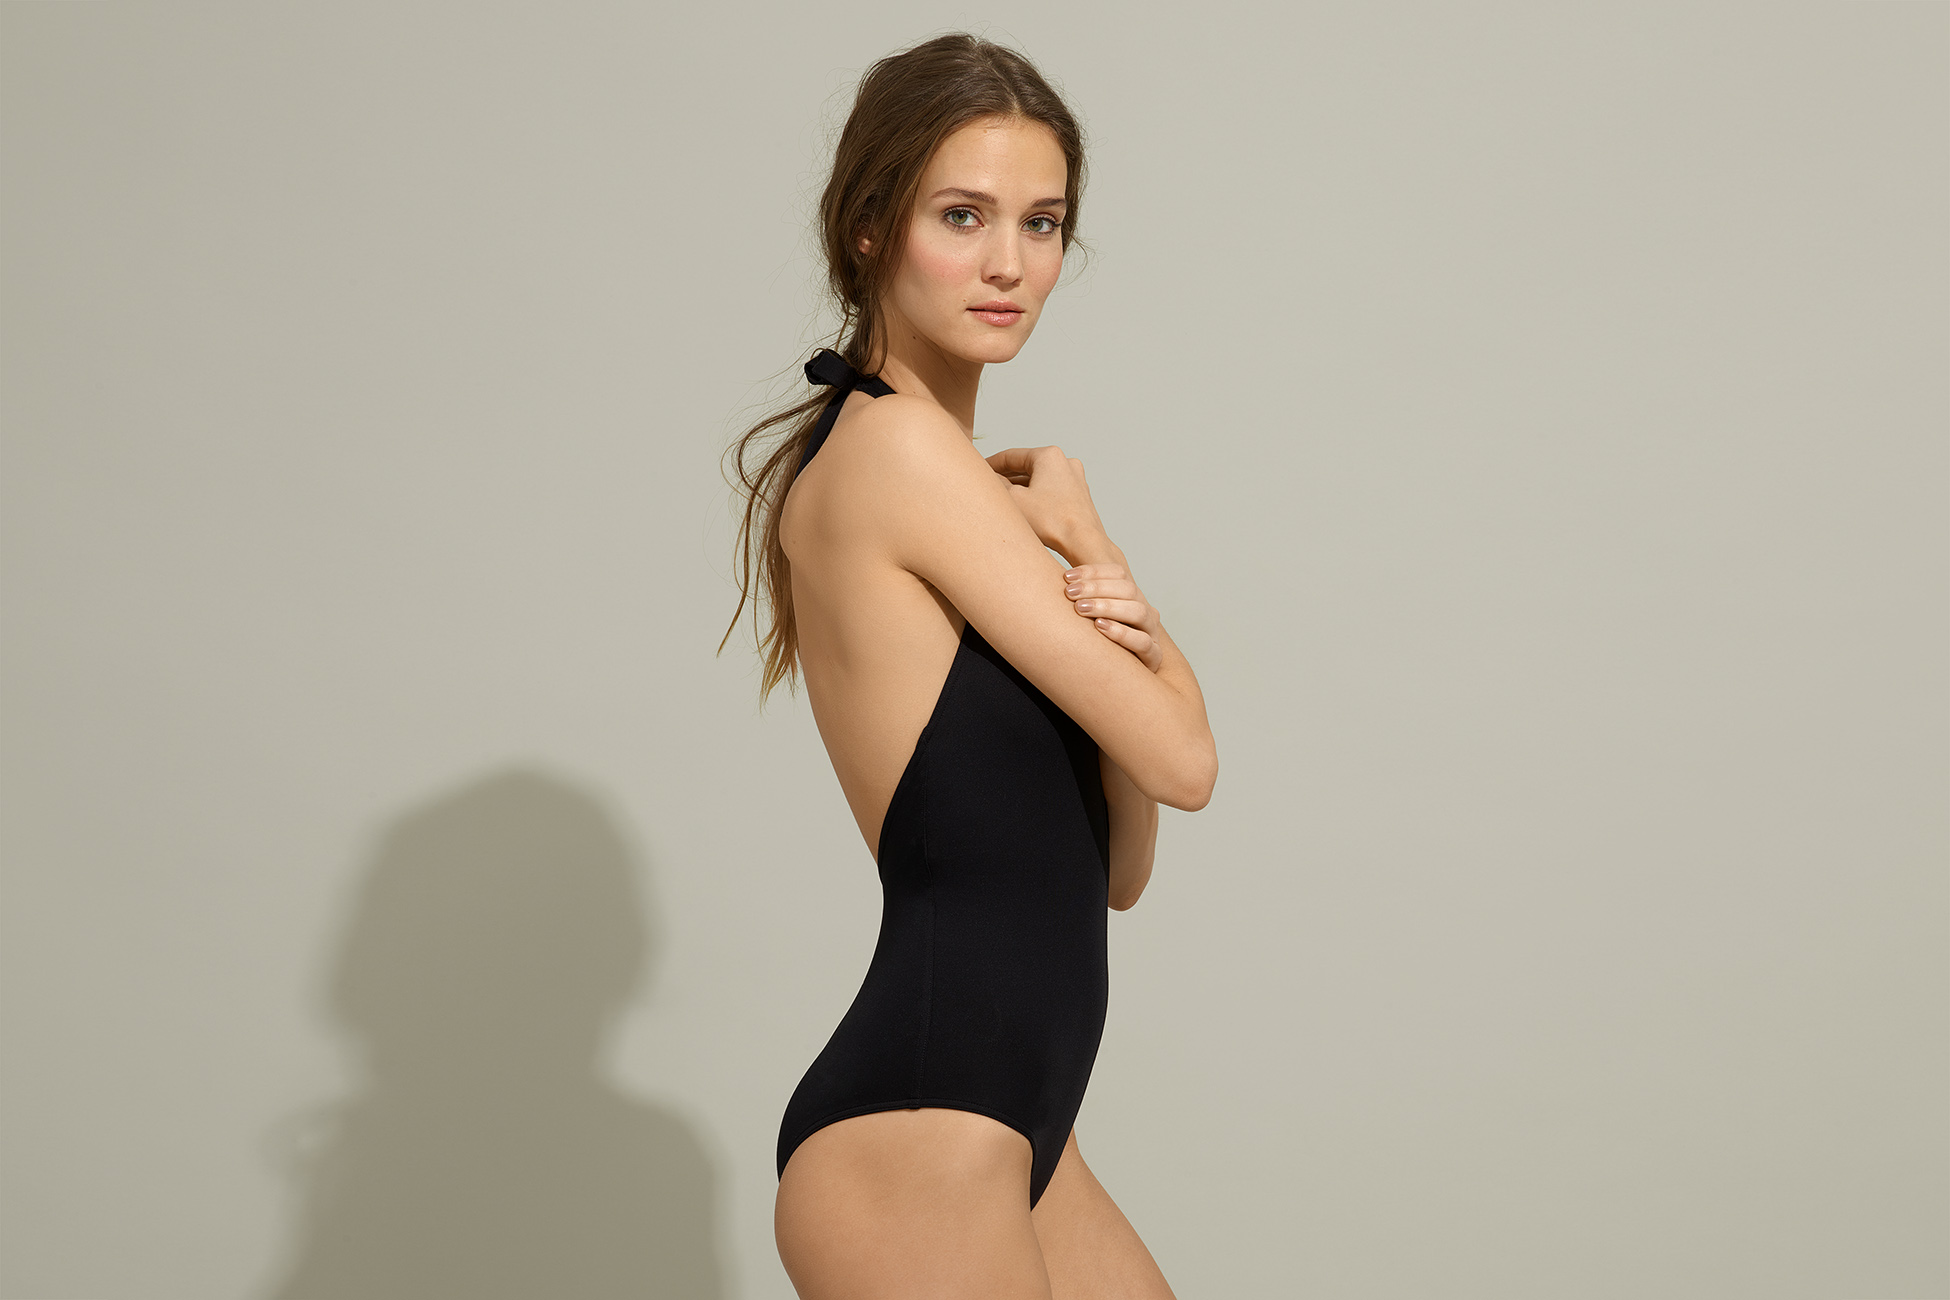 Cachette Sophisticated one-piece standard view 1